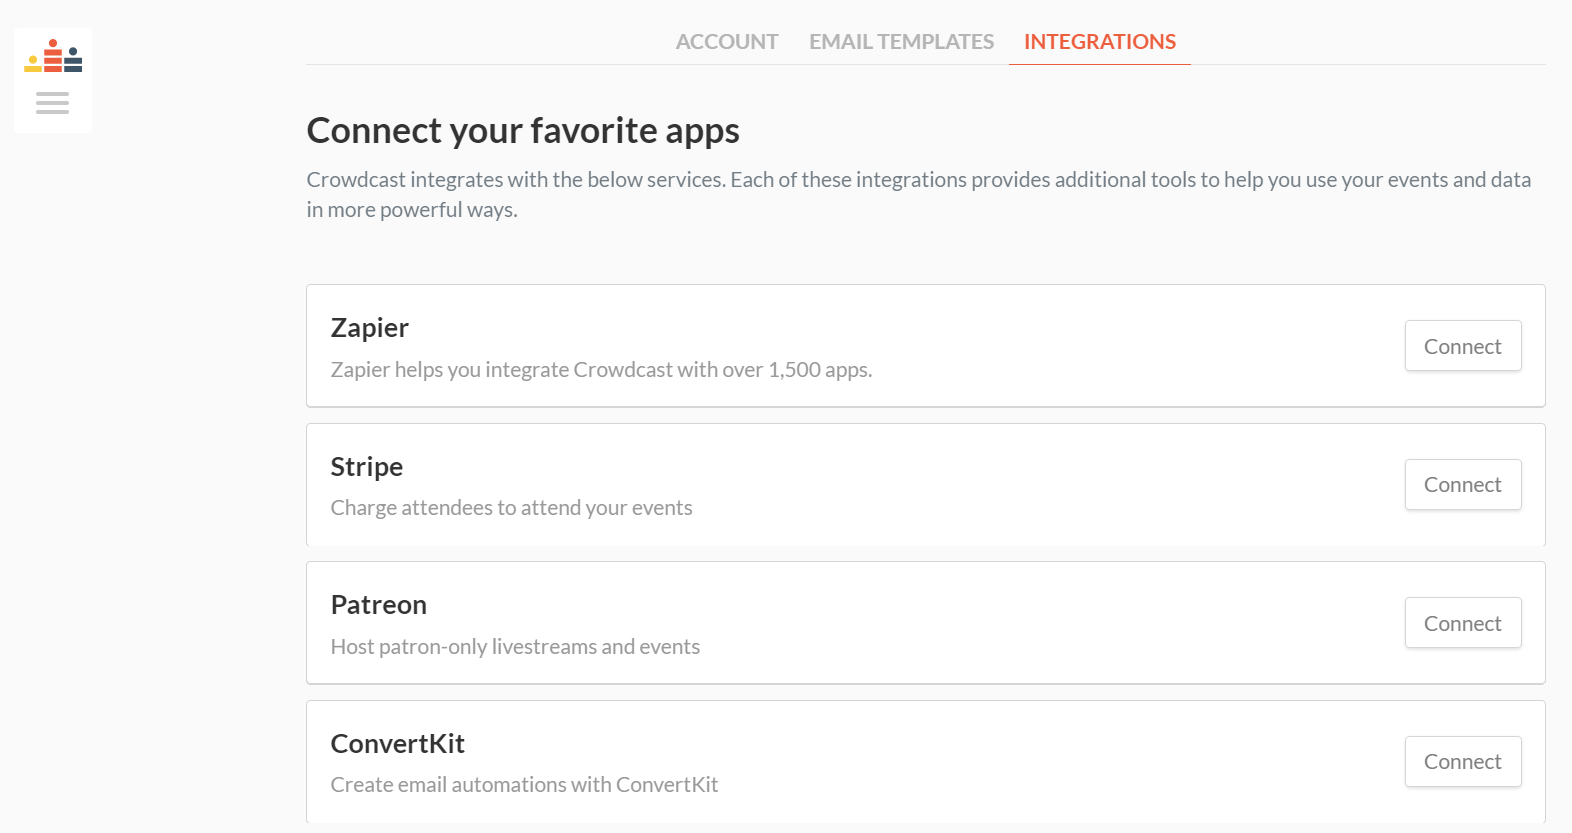 A screenshot of the integrations page on crowdcast